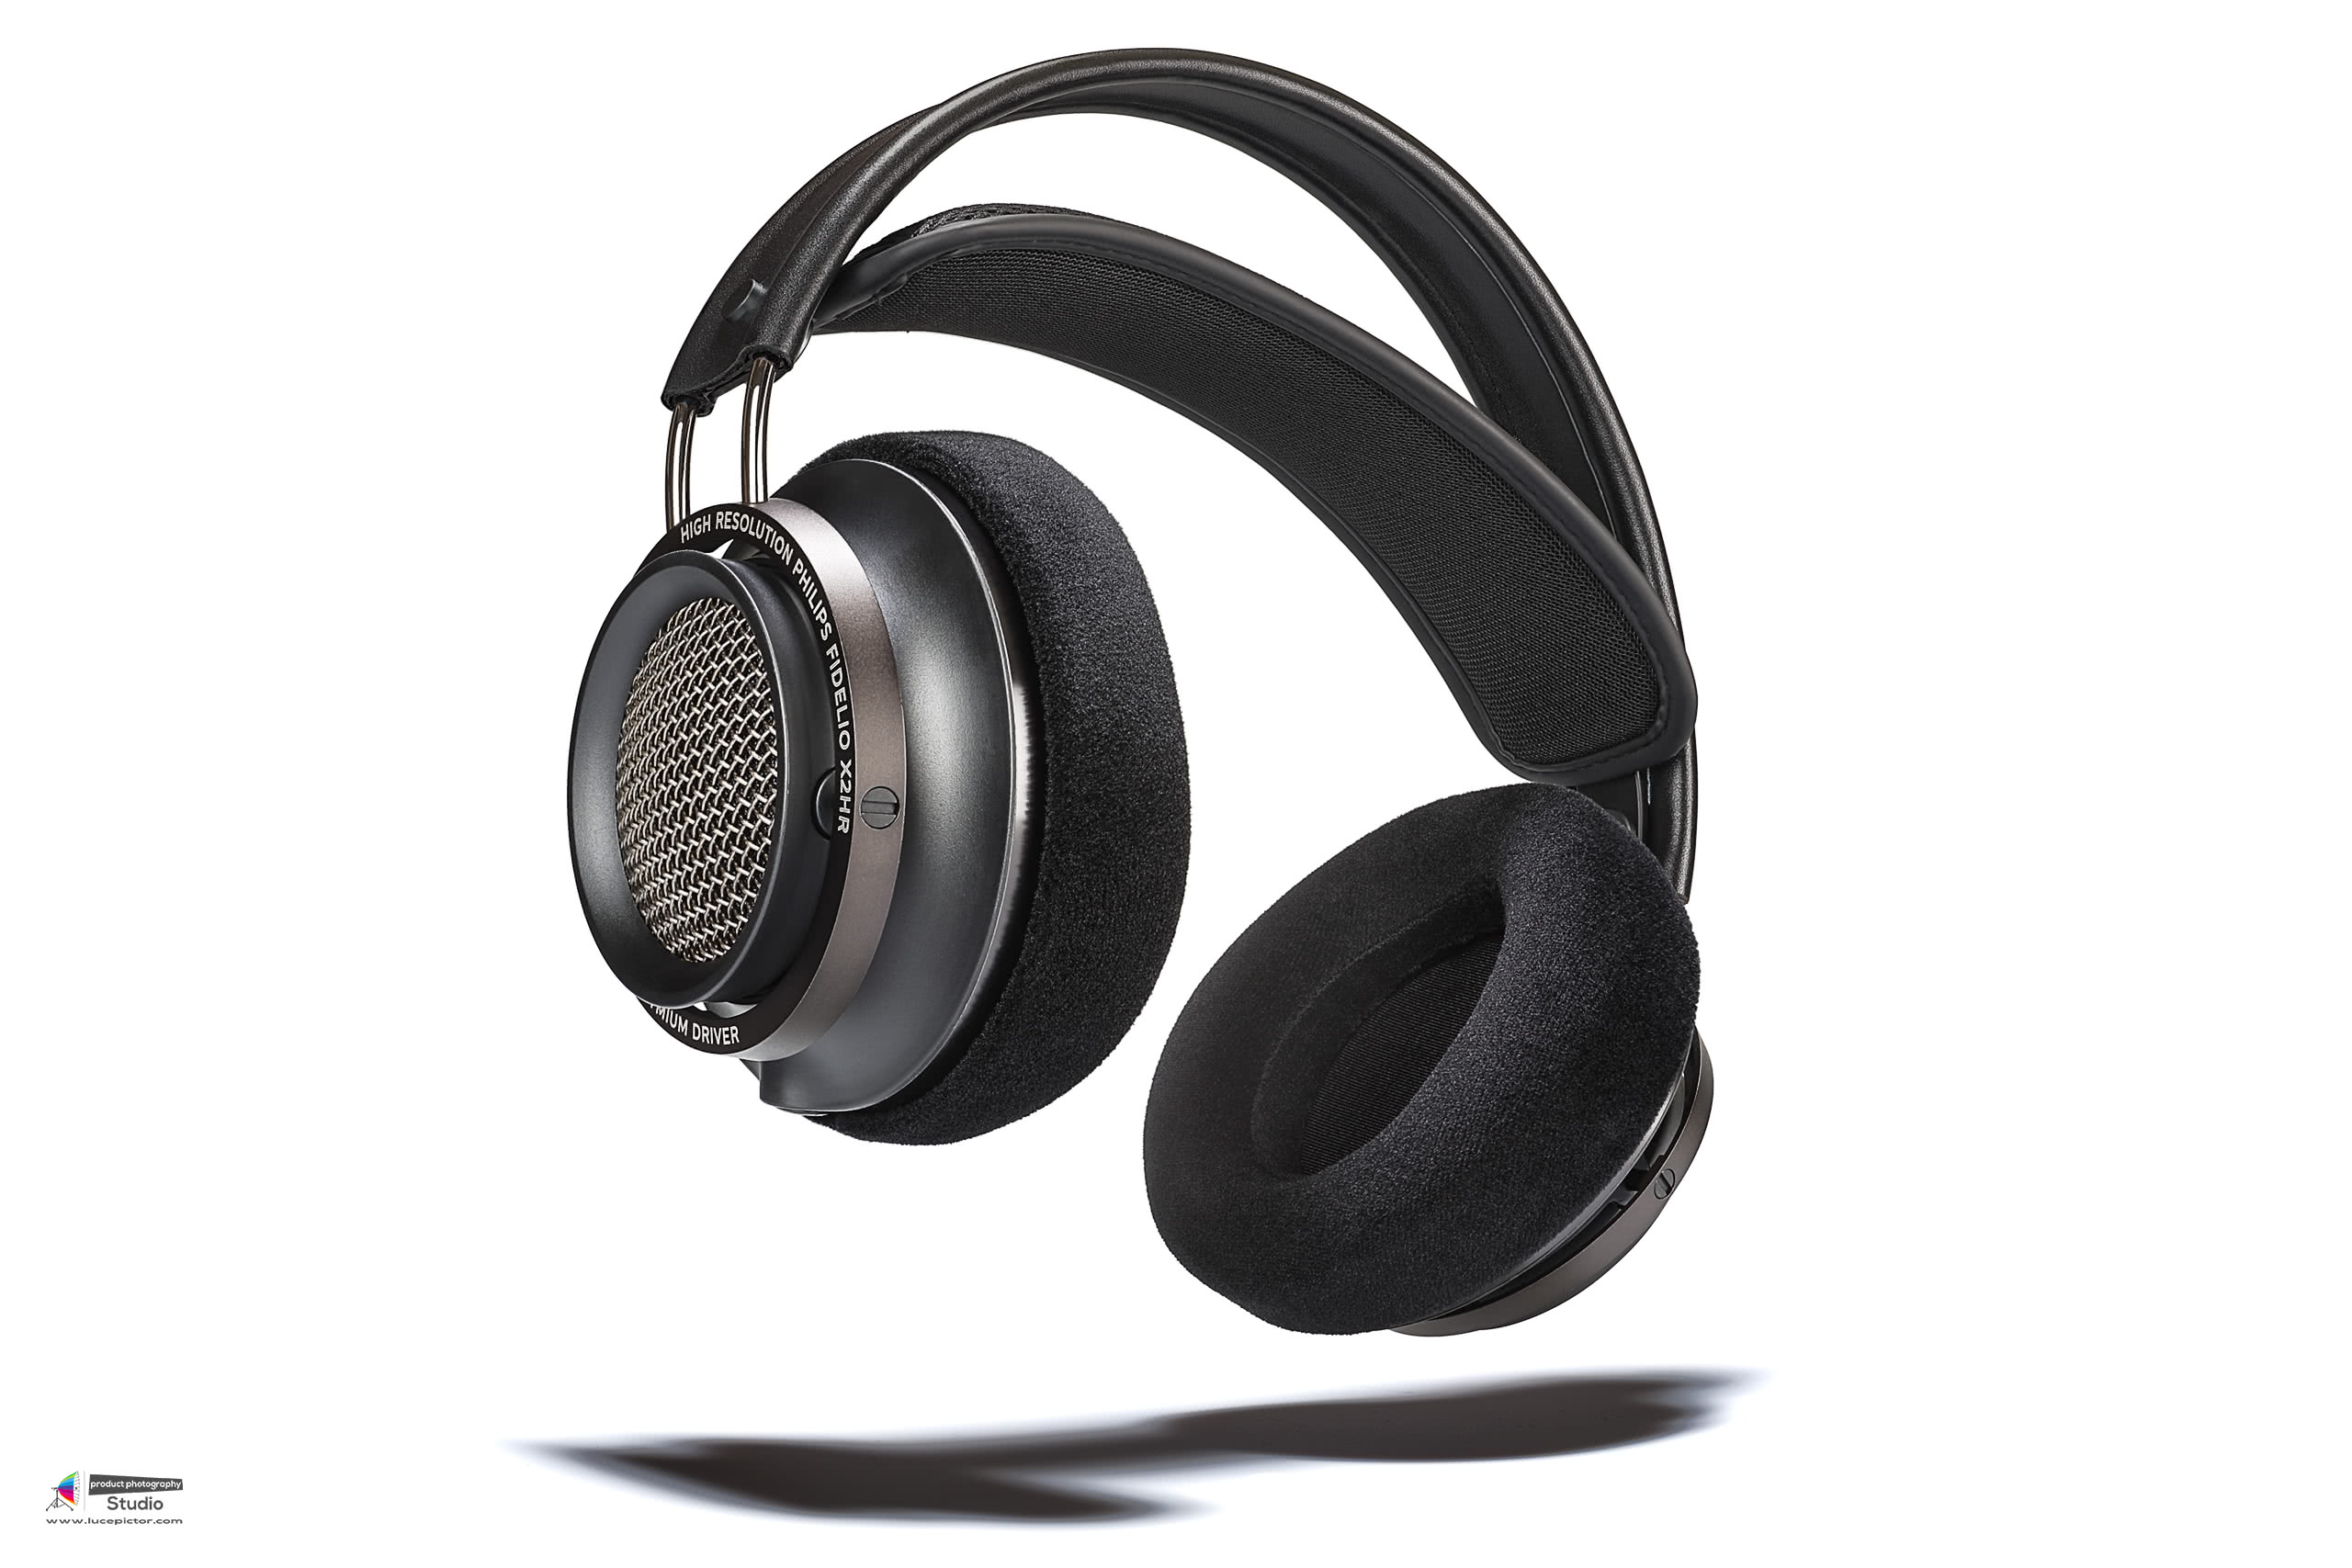 headphone product photography